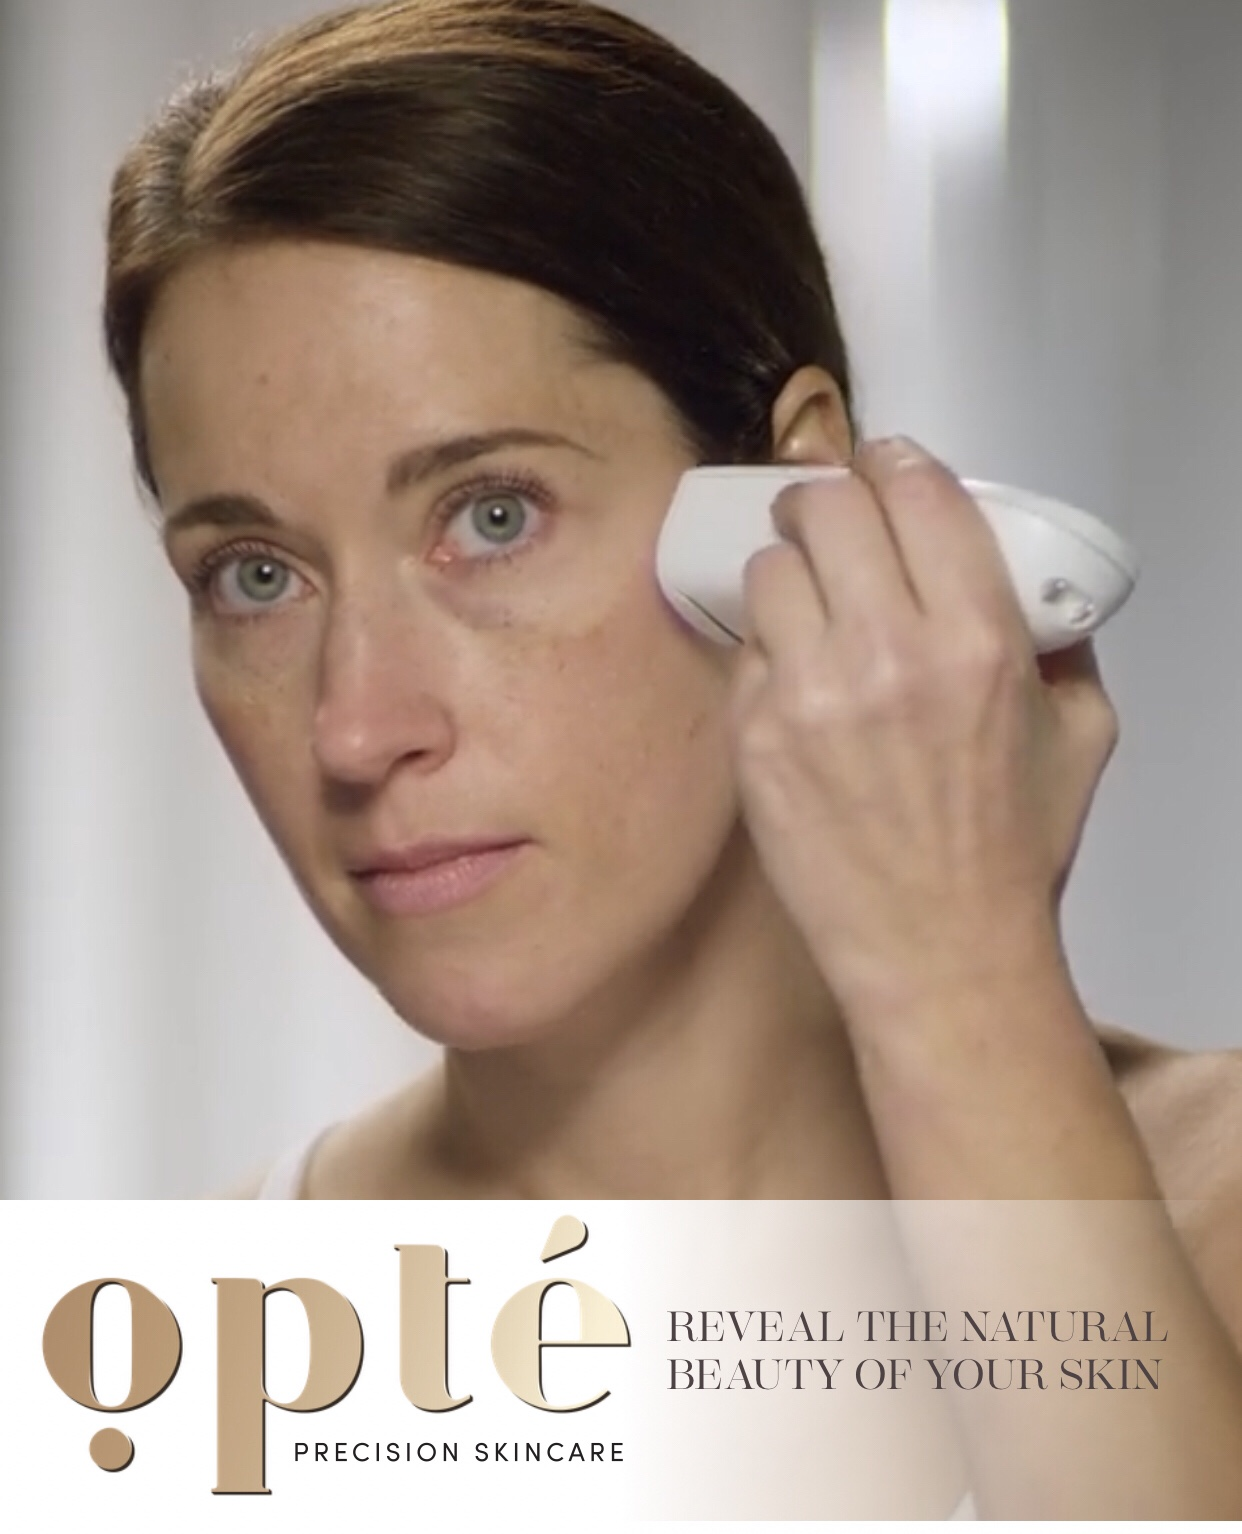 Image of: Jokes My Skin Doctor Dr Steve Mandy Just Told Me About New Invention That Is Going To Help Take Dark Spots Off My Face Im Thrilled Digidame Wordpresscom January 2019 Digidame